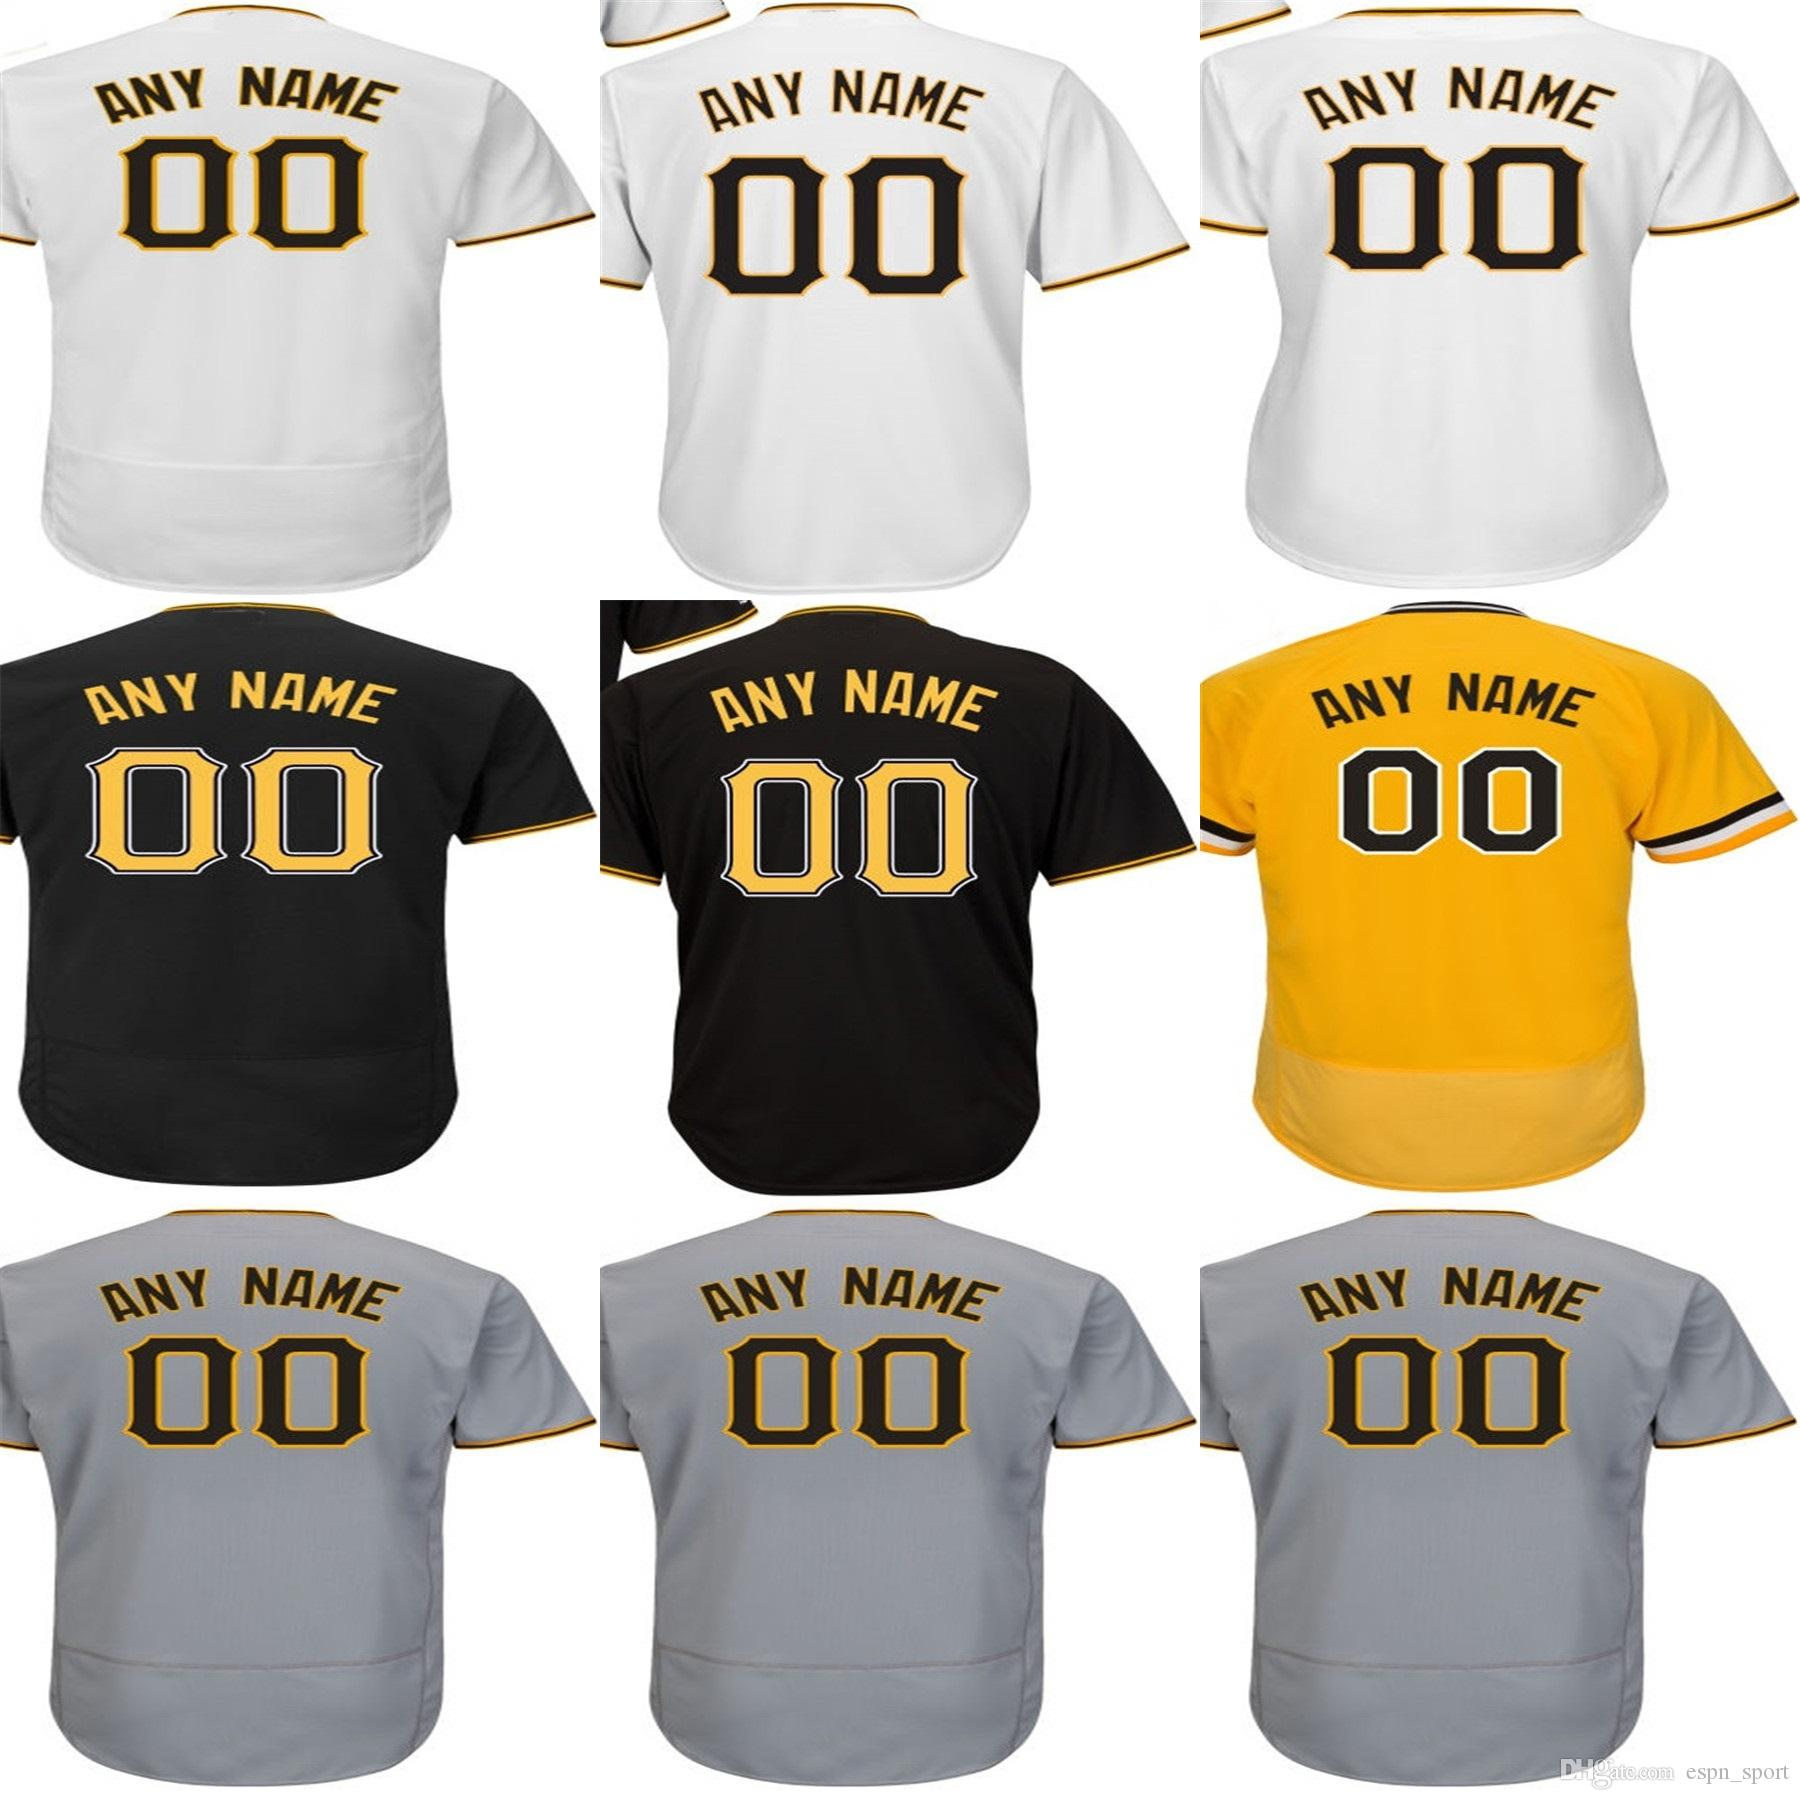 4bb7c4eeb61 2016 New TOP Quality Personalized Pittsburgh Jersey White Gray Black ...